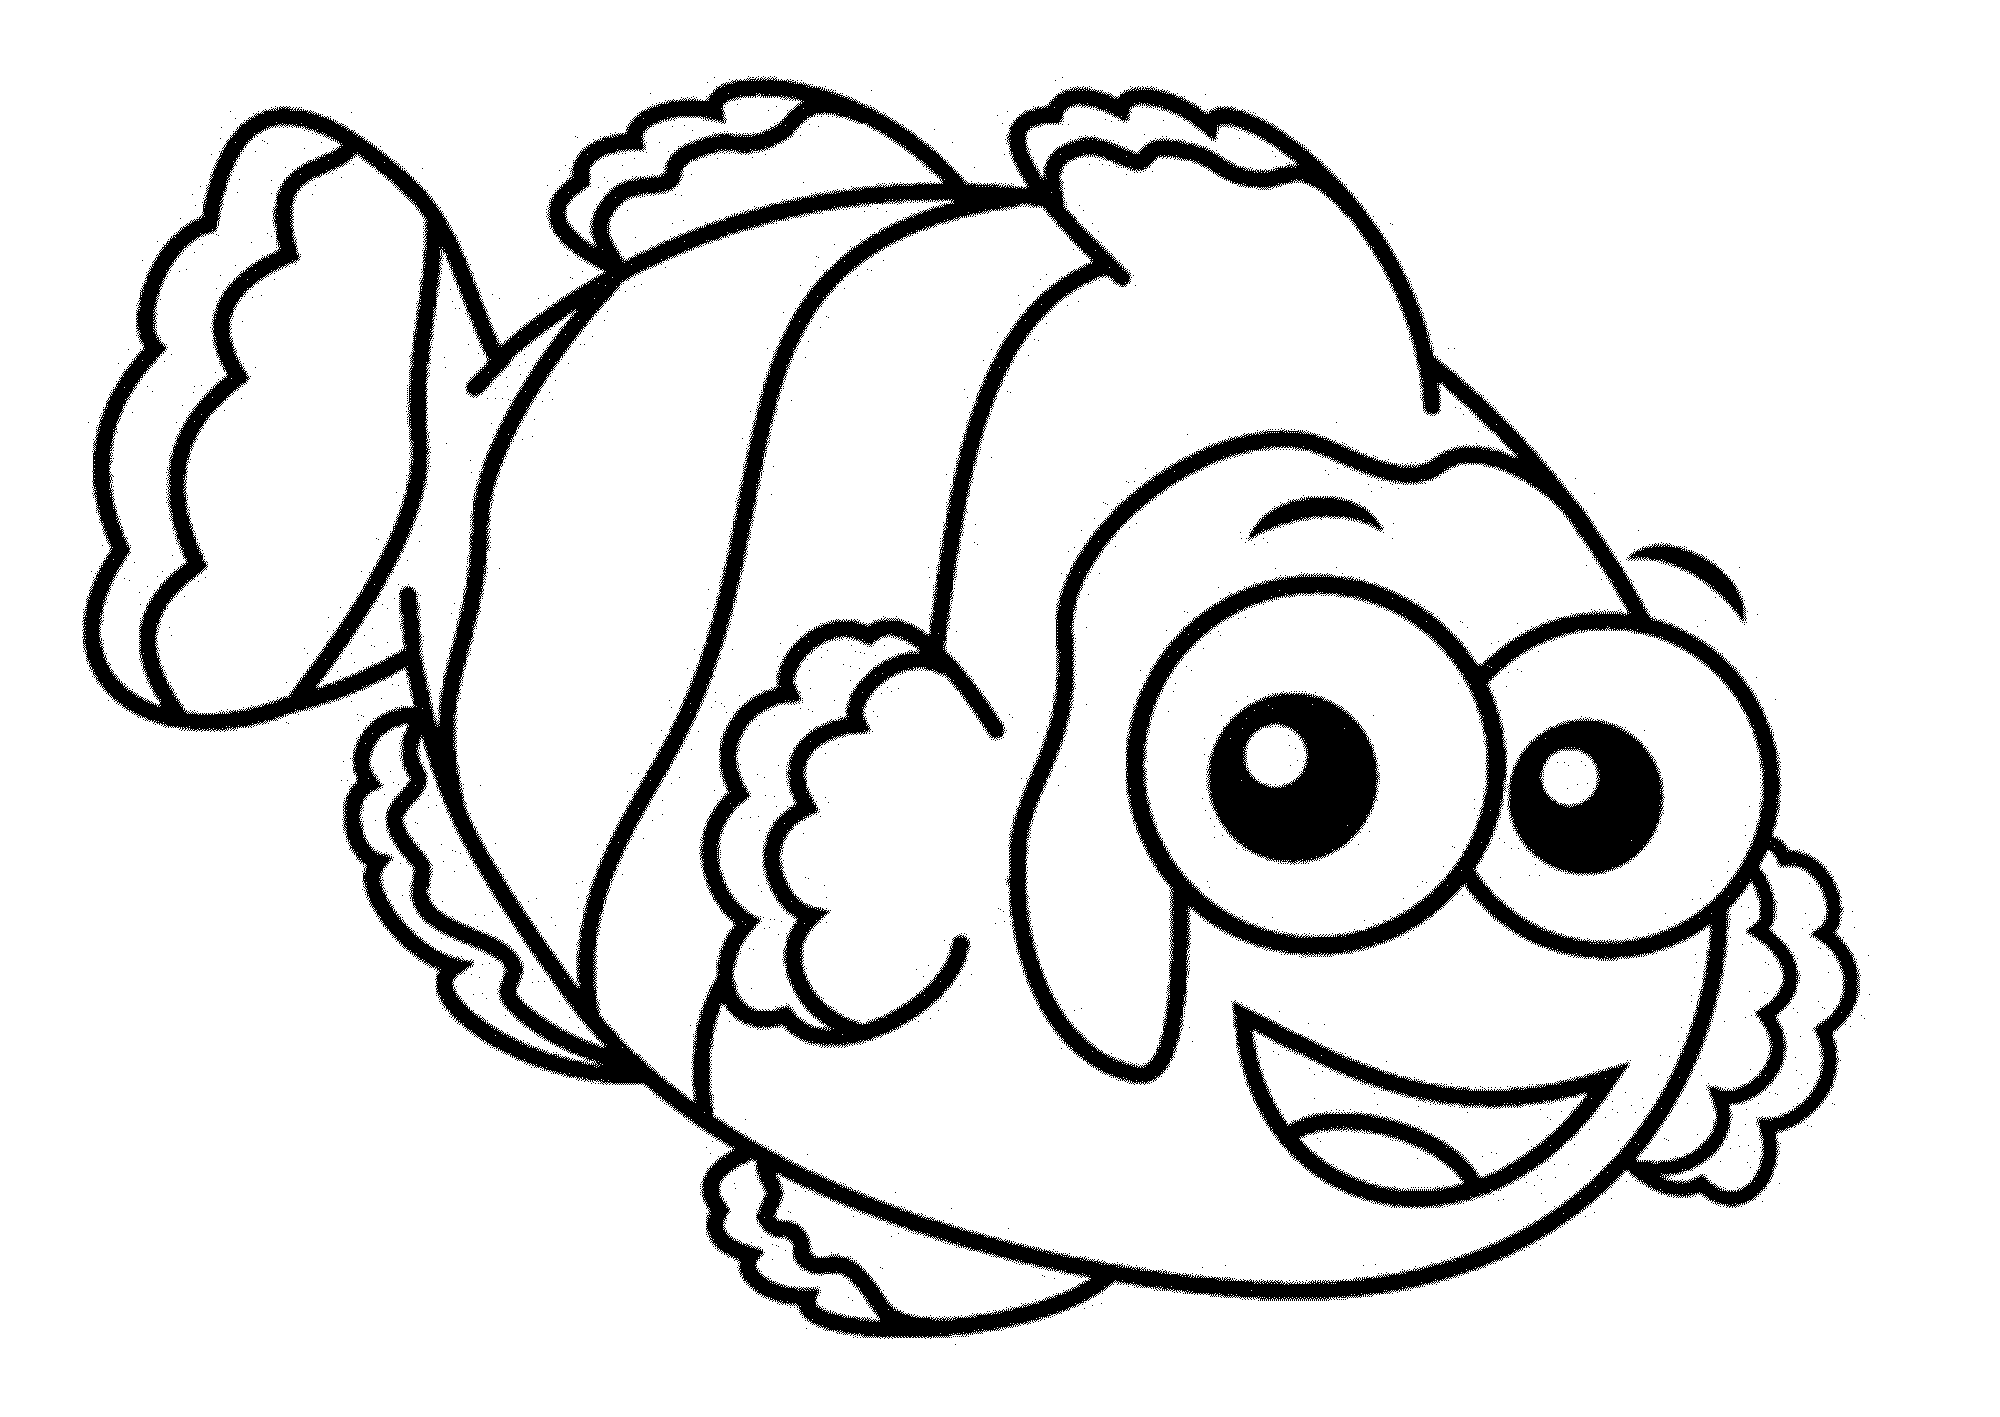 fish coloring book free printable fish coloring pages for kids cool2bkids book fish coloring